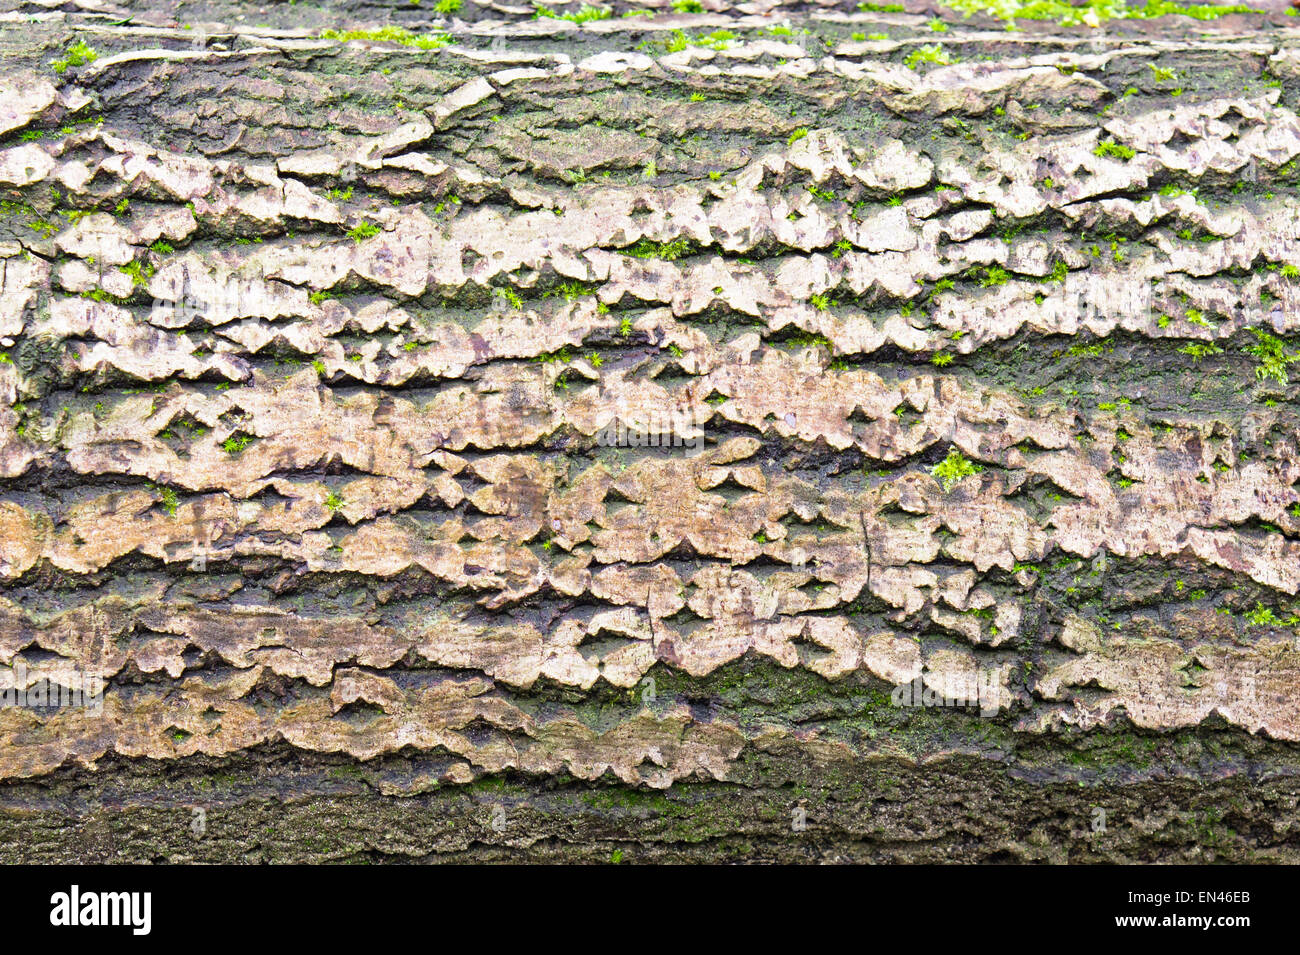 Detailed image of part of an old tree trunk with bark and moss Stock Photo